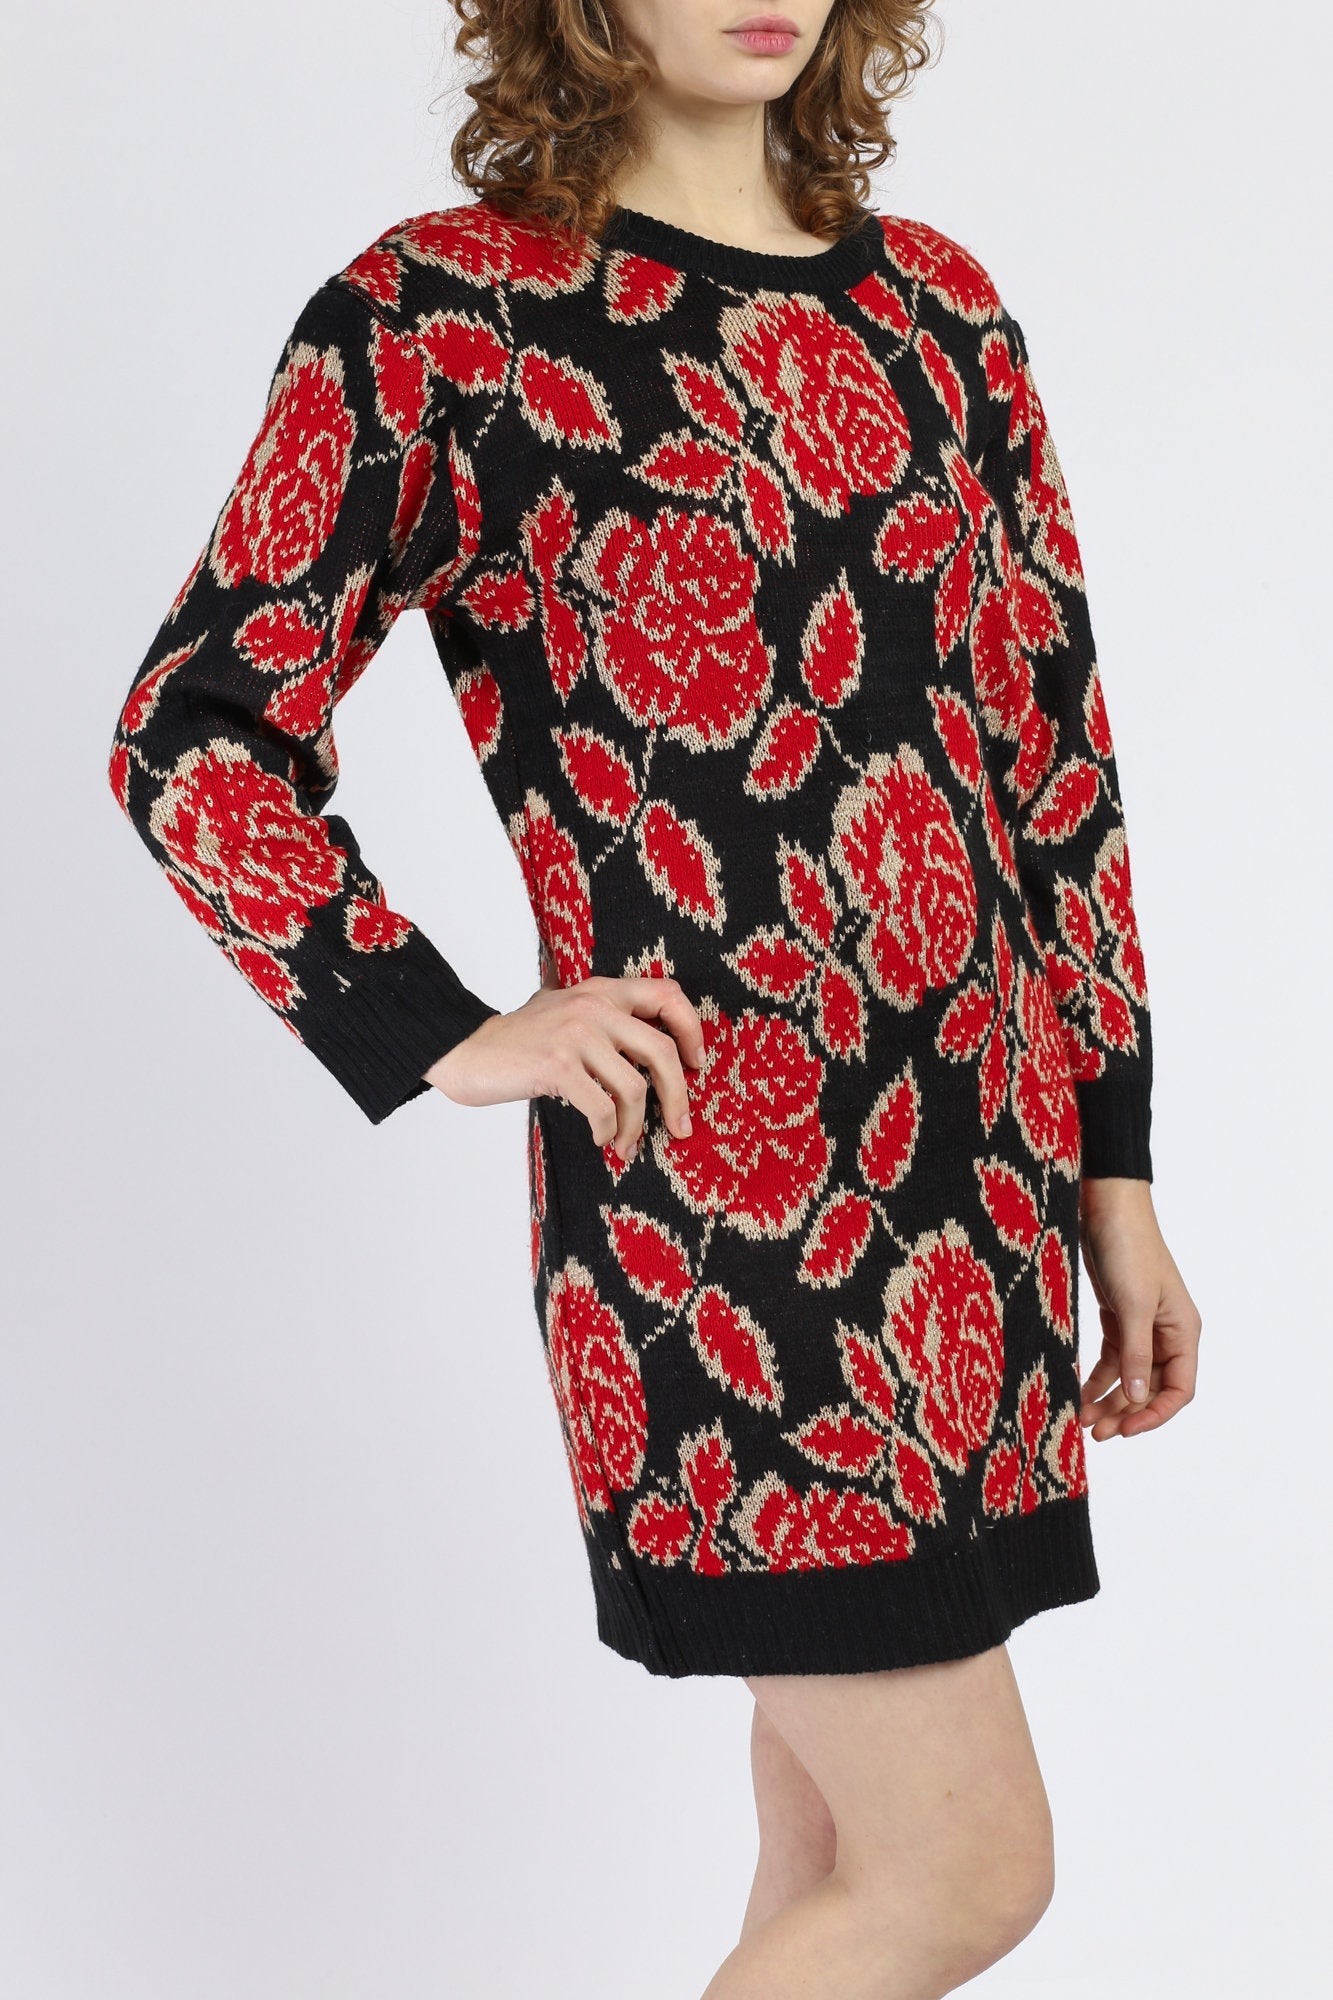 80s Red & Black Metallic Floral Sweater Dress - Small